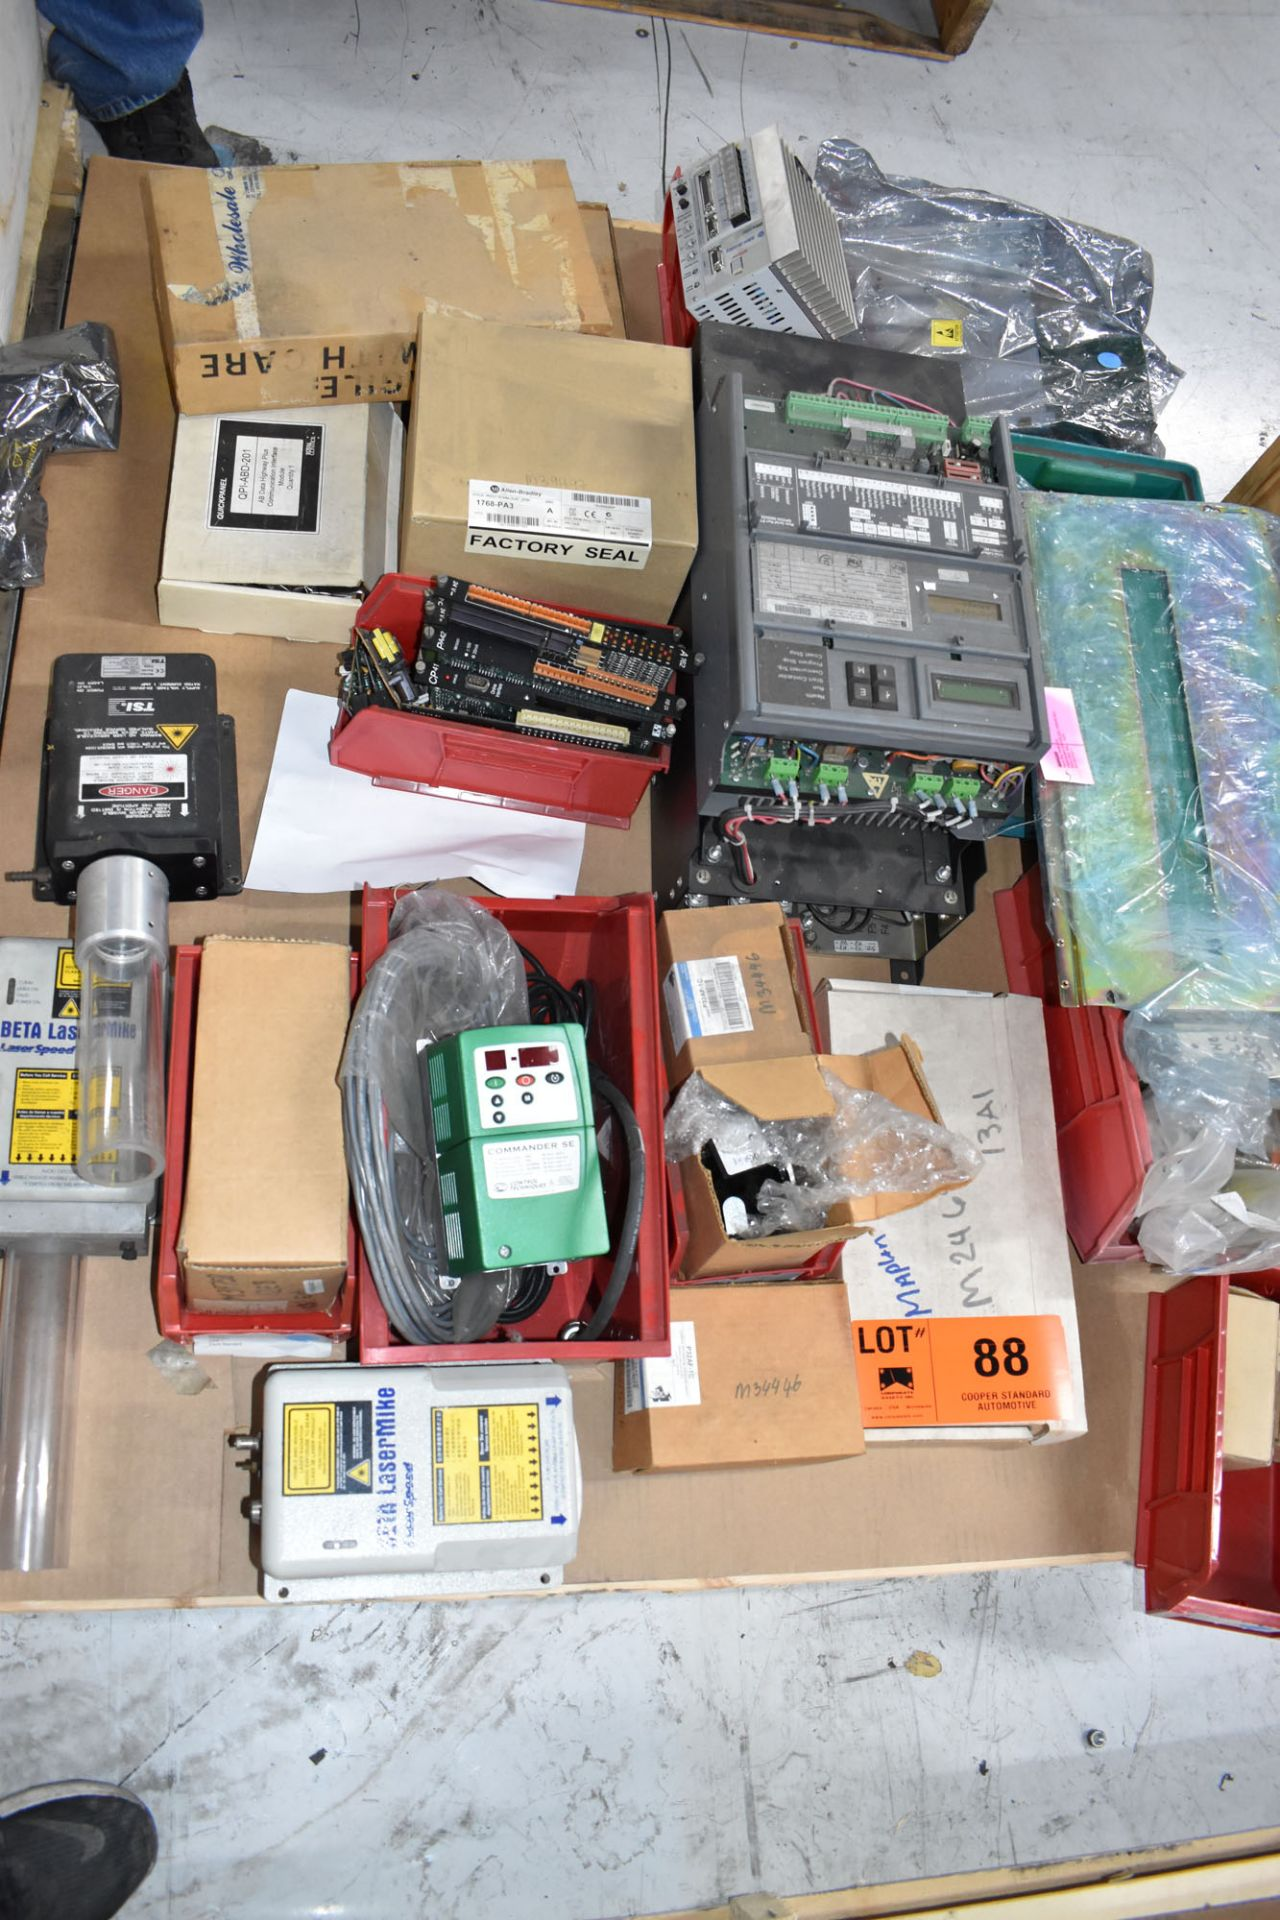 LOT/ PALLET WITH CONTENTS CONSISTING OF ELECTRICAL PANELS, PARTS, AND EXTRUDER LINE COMPONENTS [